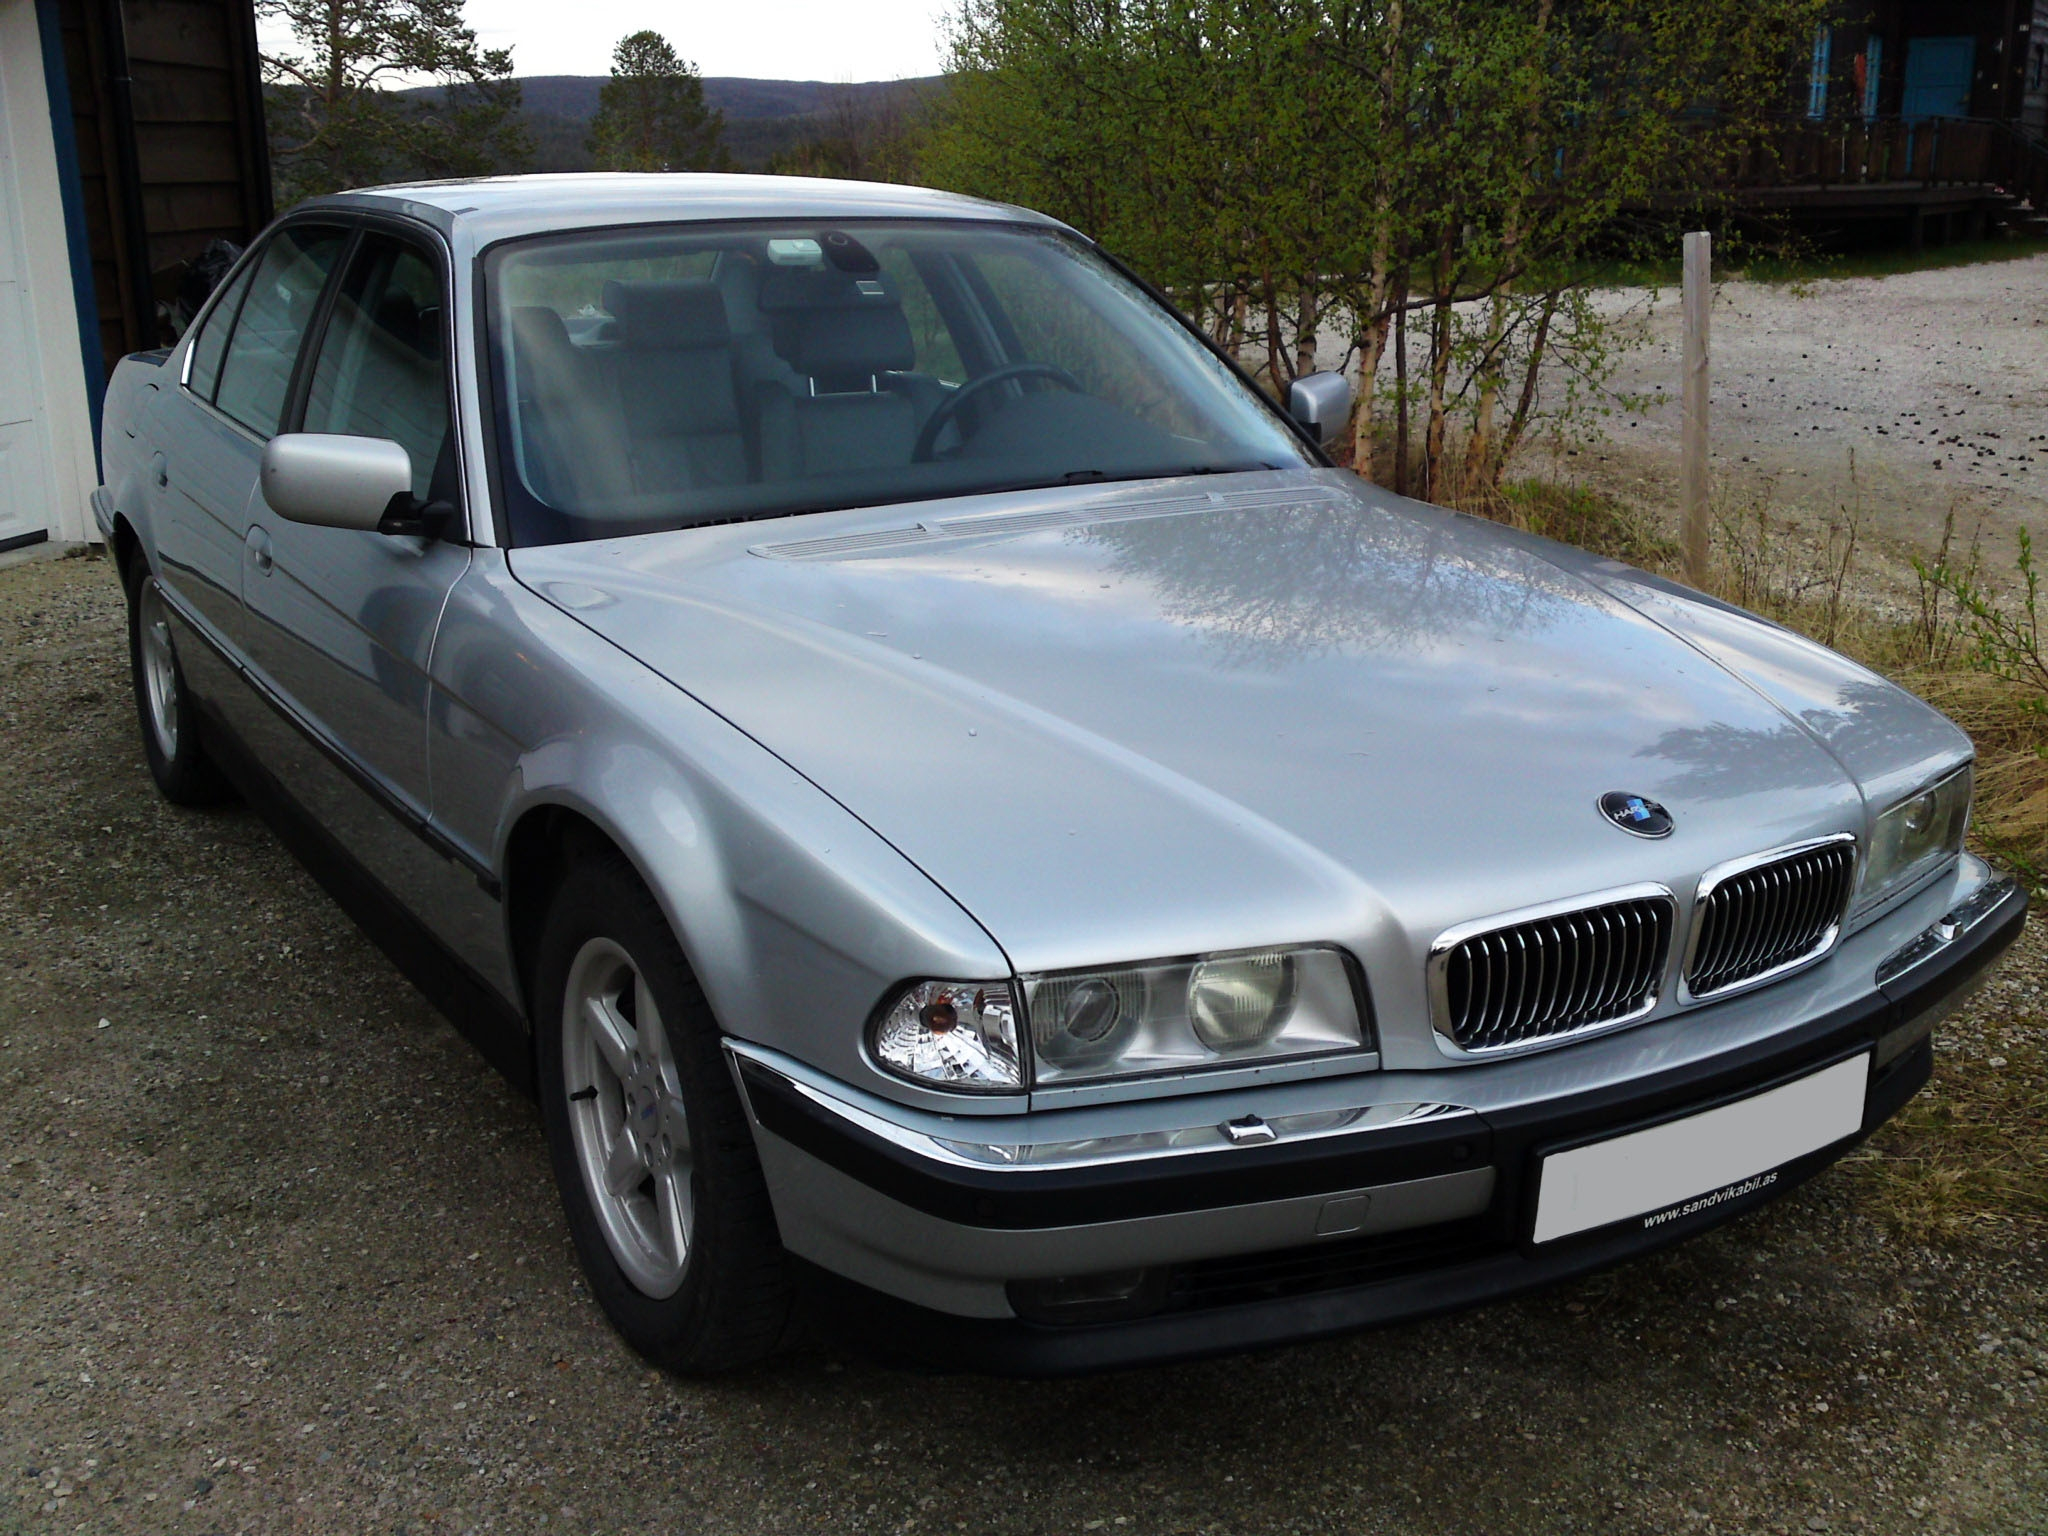 oea_69's 1998 BMW 7 Series